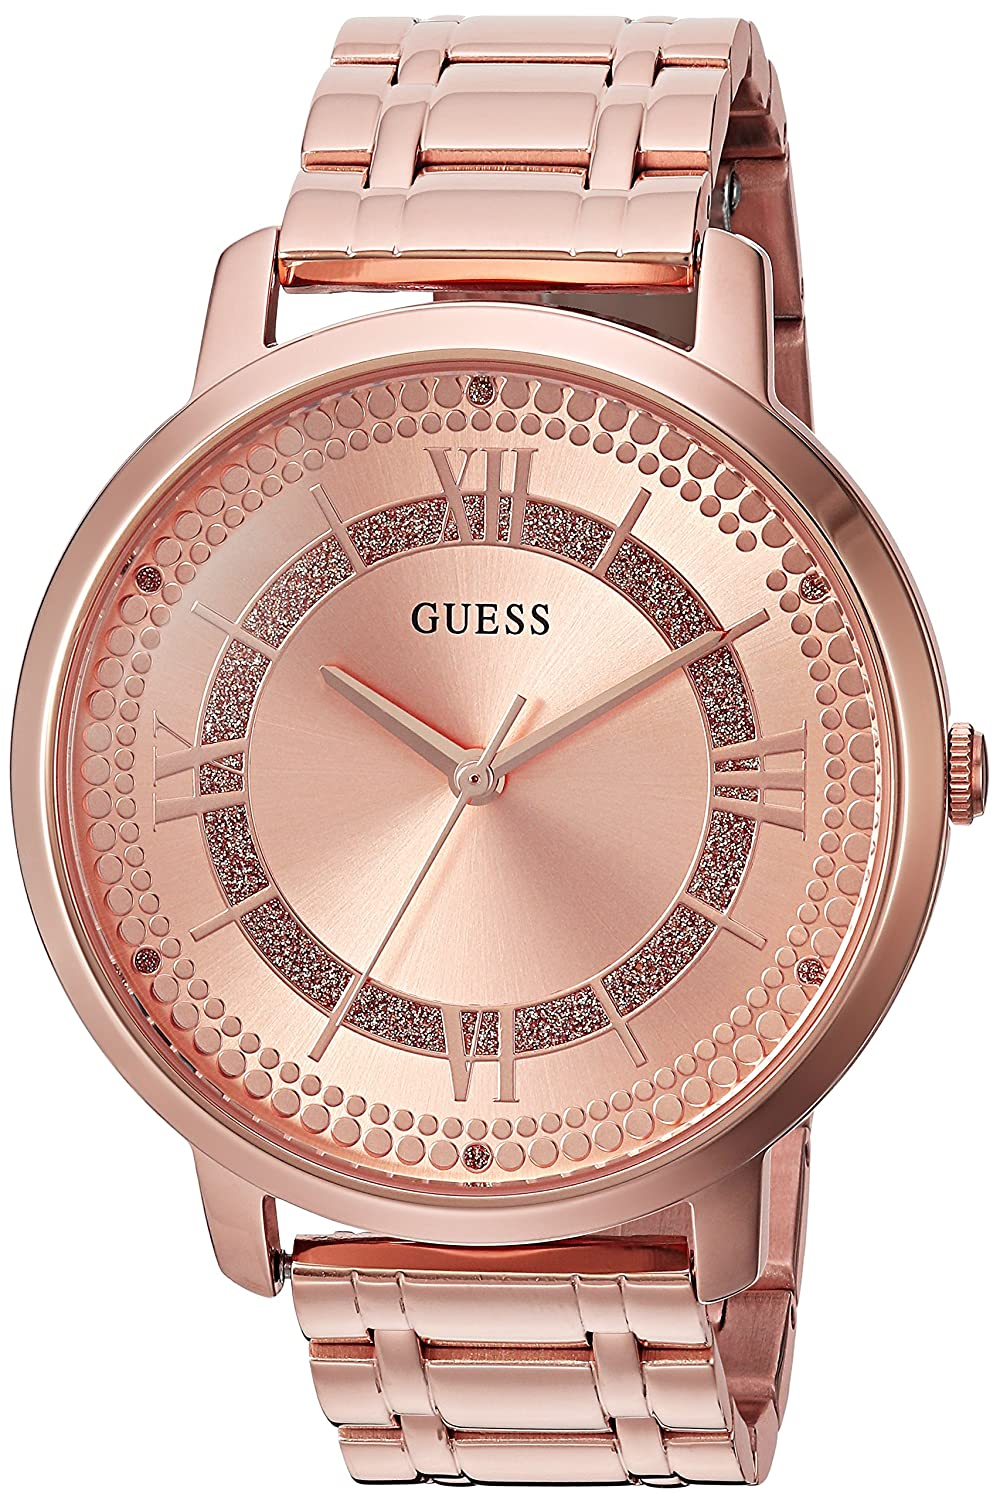 CDM product GUESS Women's Rose Gold-Tone Slim Classic Watch big image